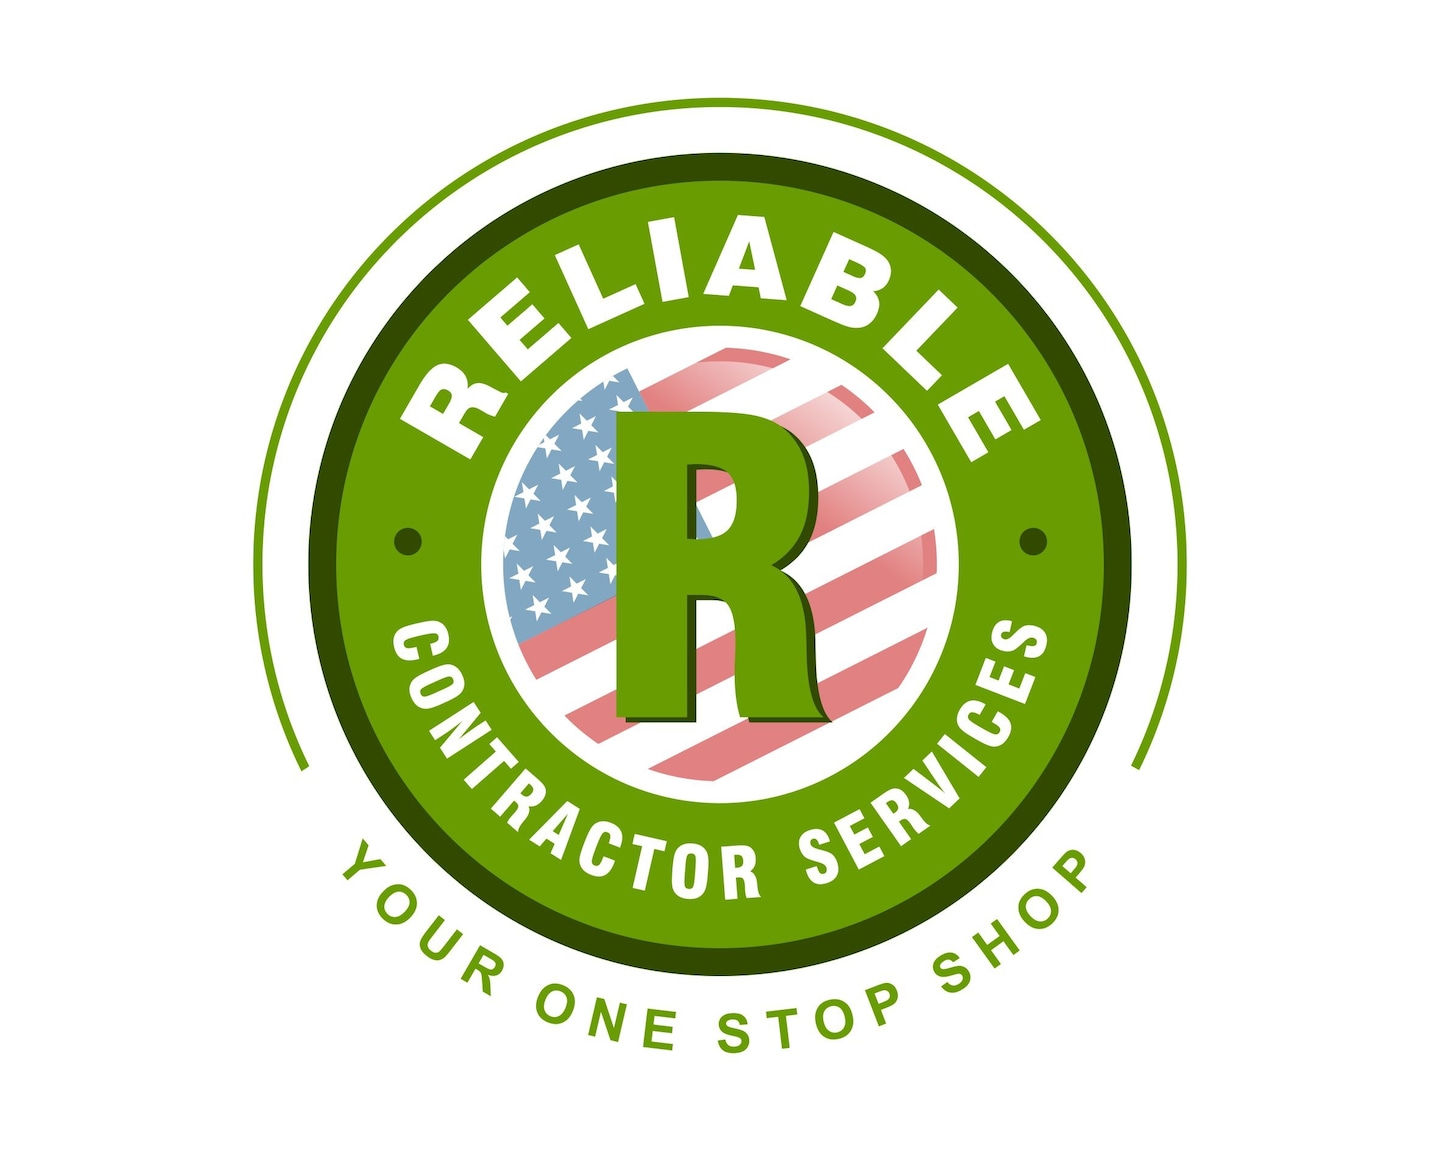 Reliable Contractor Services